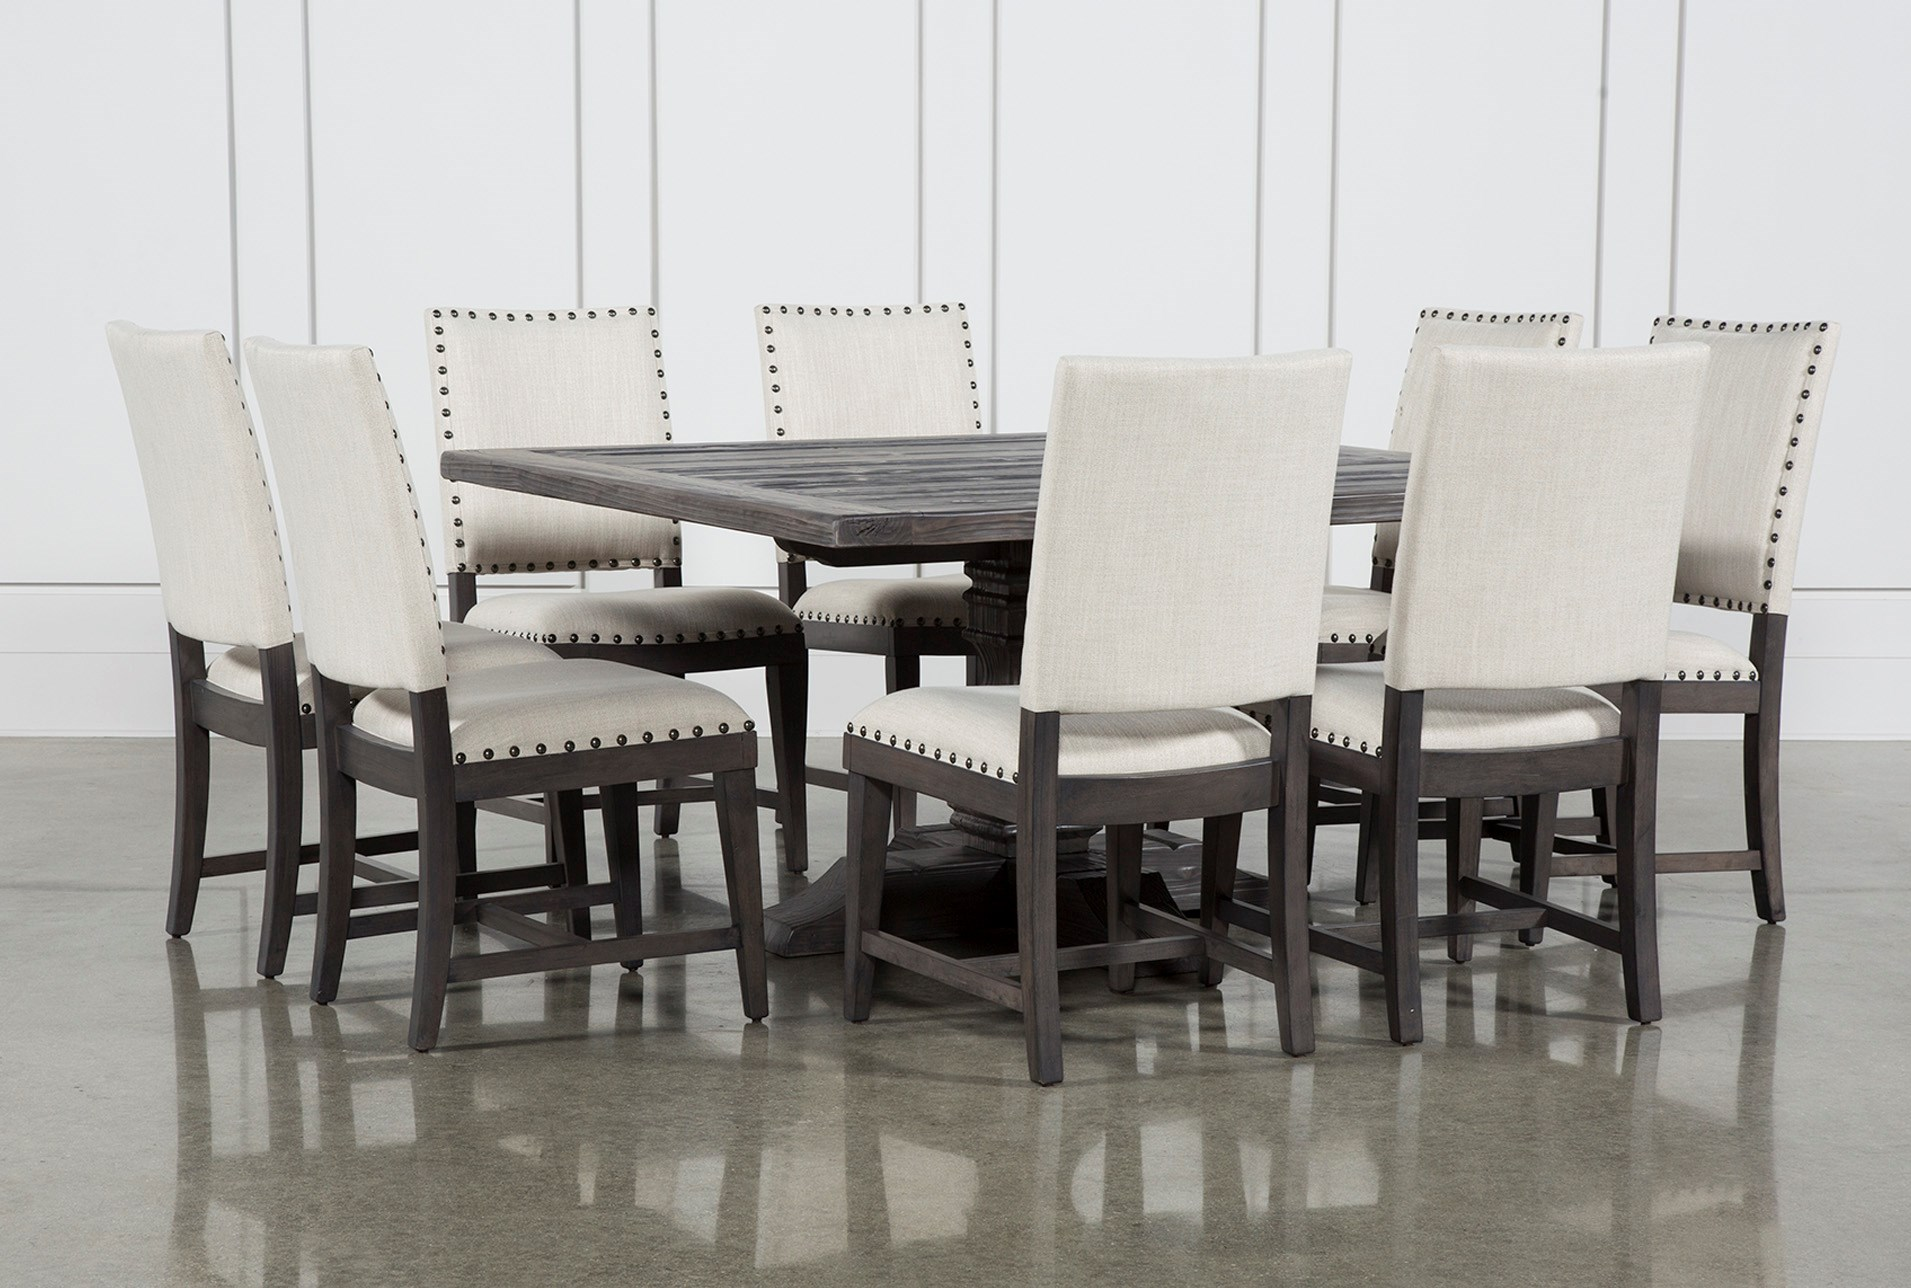 Norwood 9 Piece Square Dining Set Qty 1 Has Been Successfully Added To Your Cart